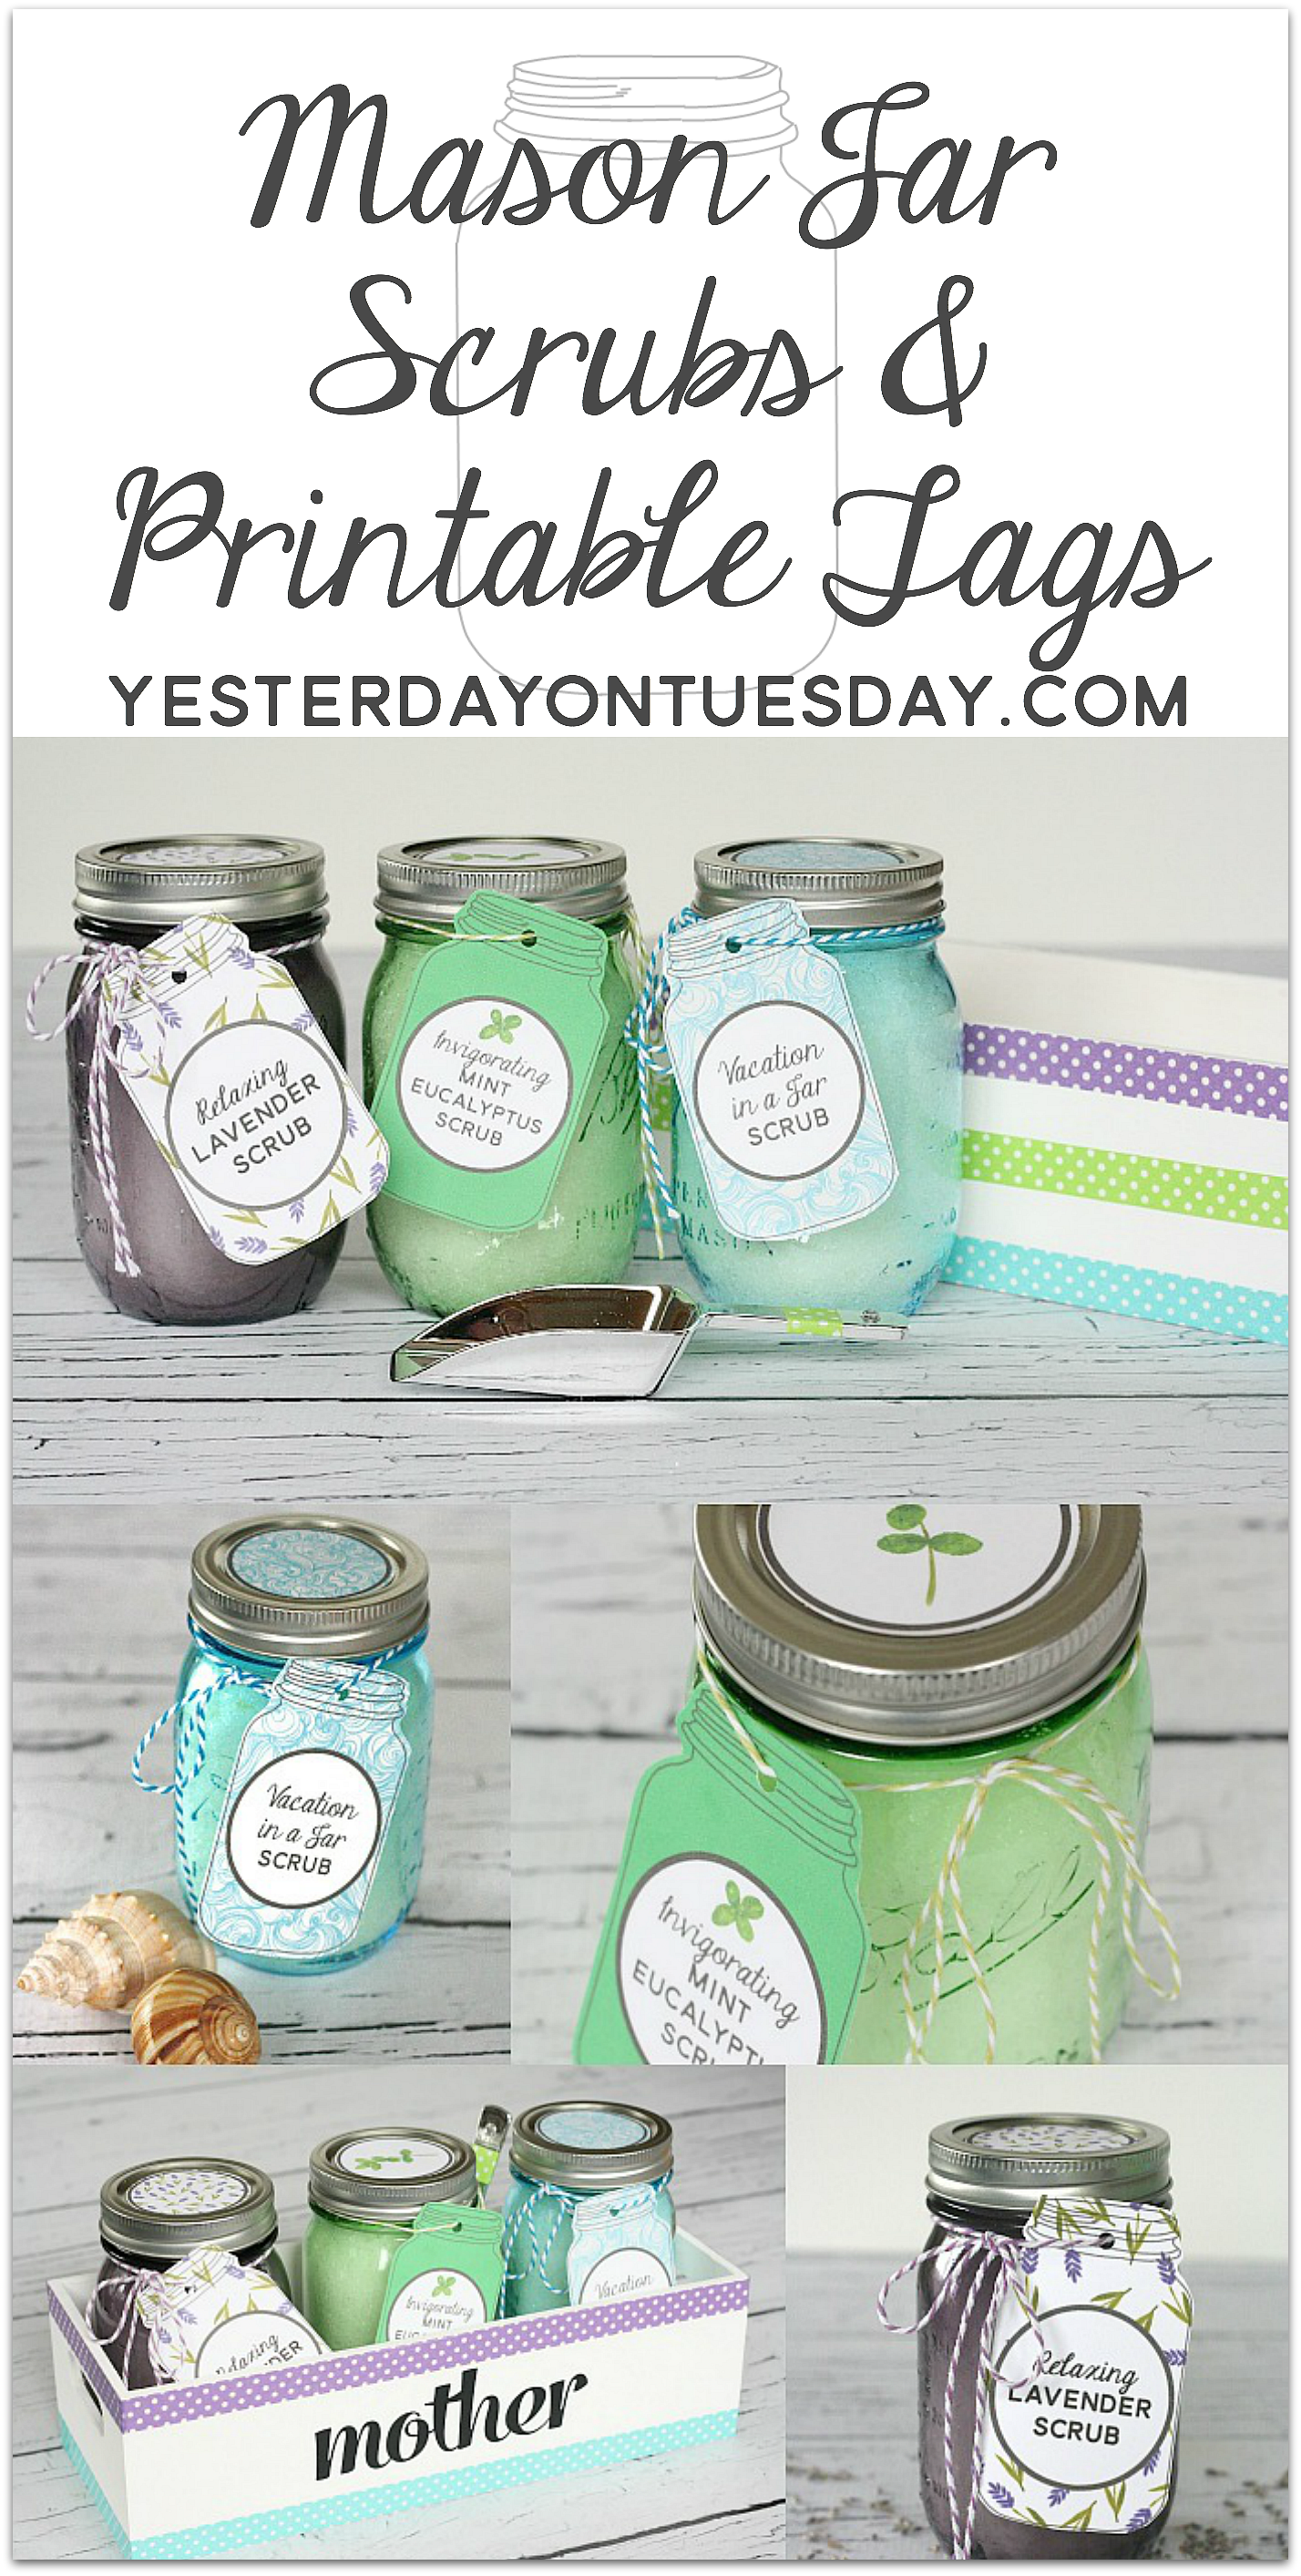 Mason Jar Scrubs and Printable Tags